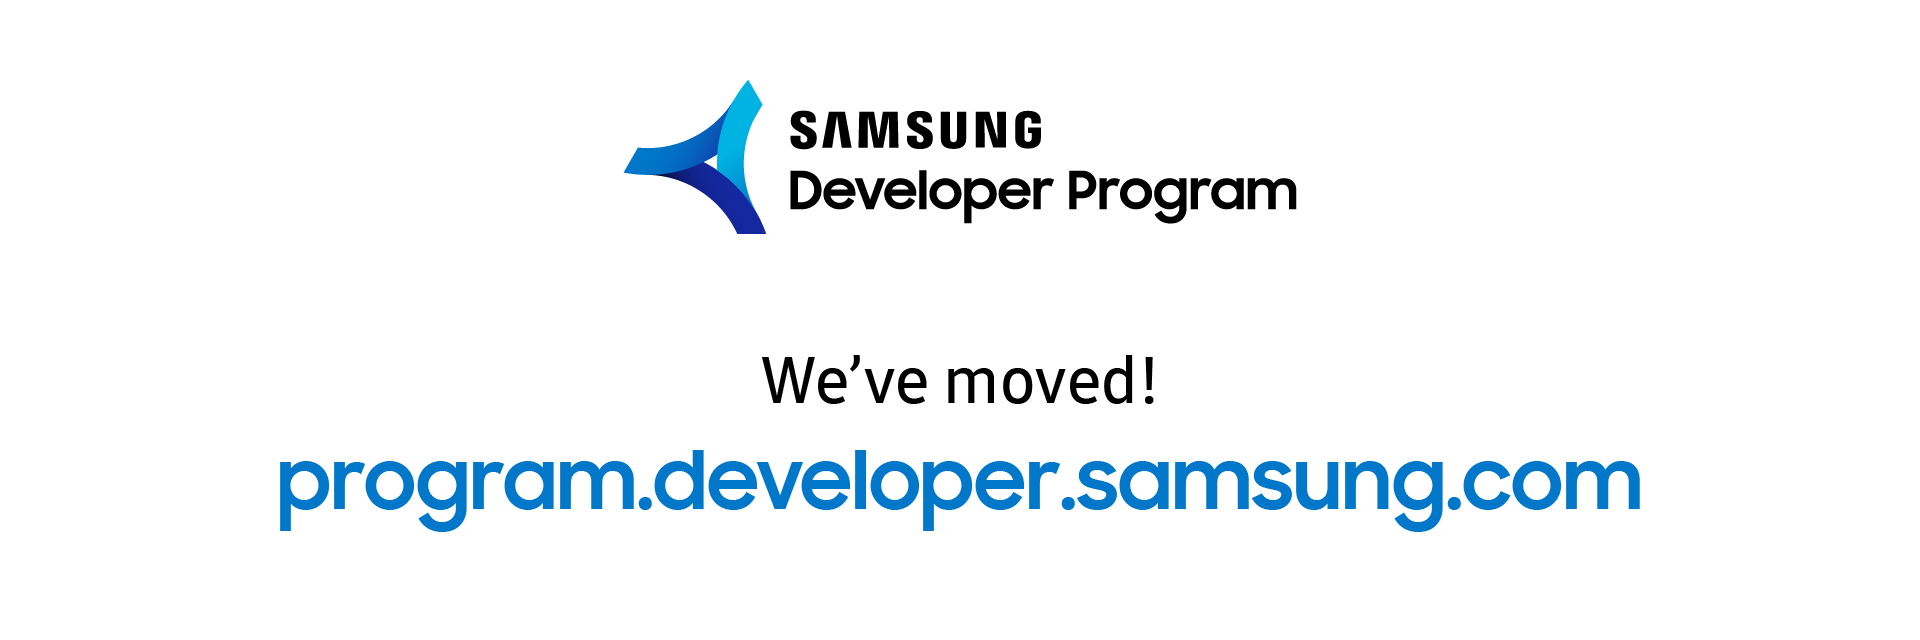 The Samsung Developer Program (SDP) has a new home!